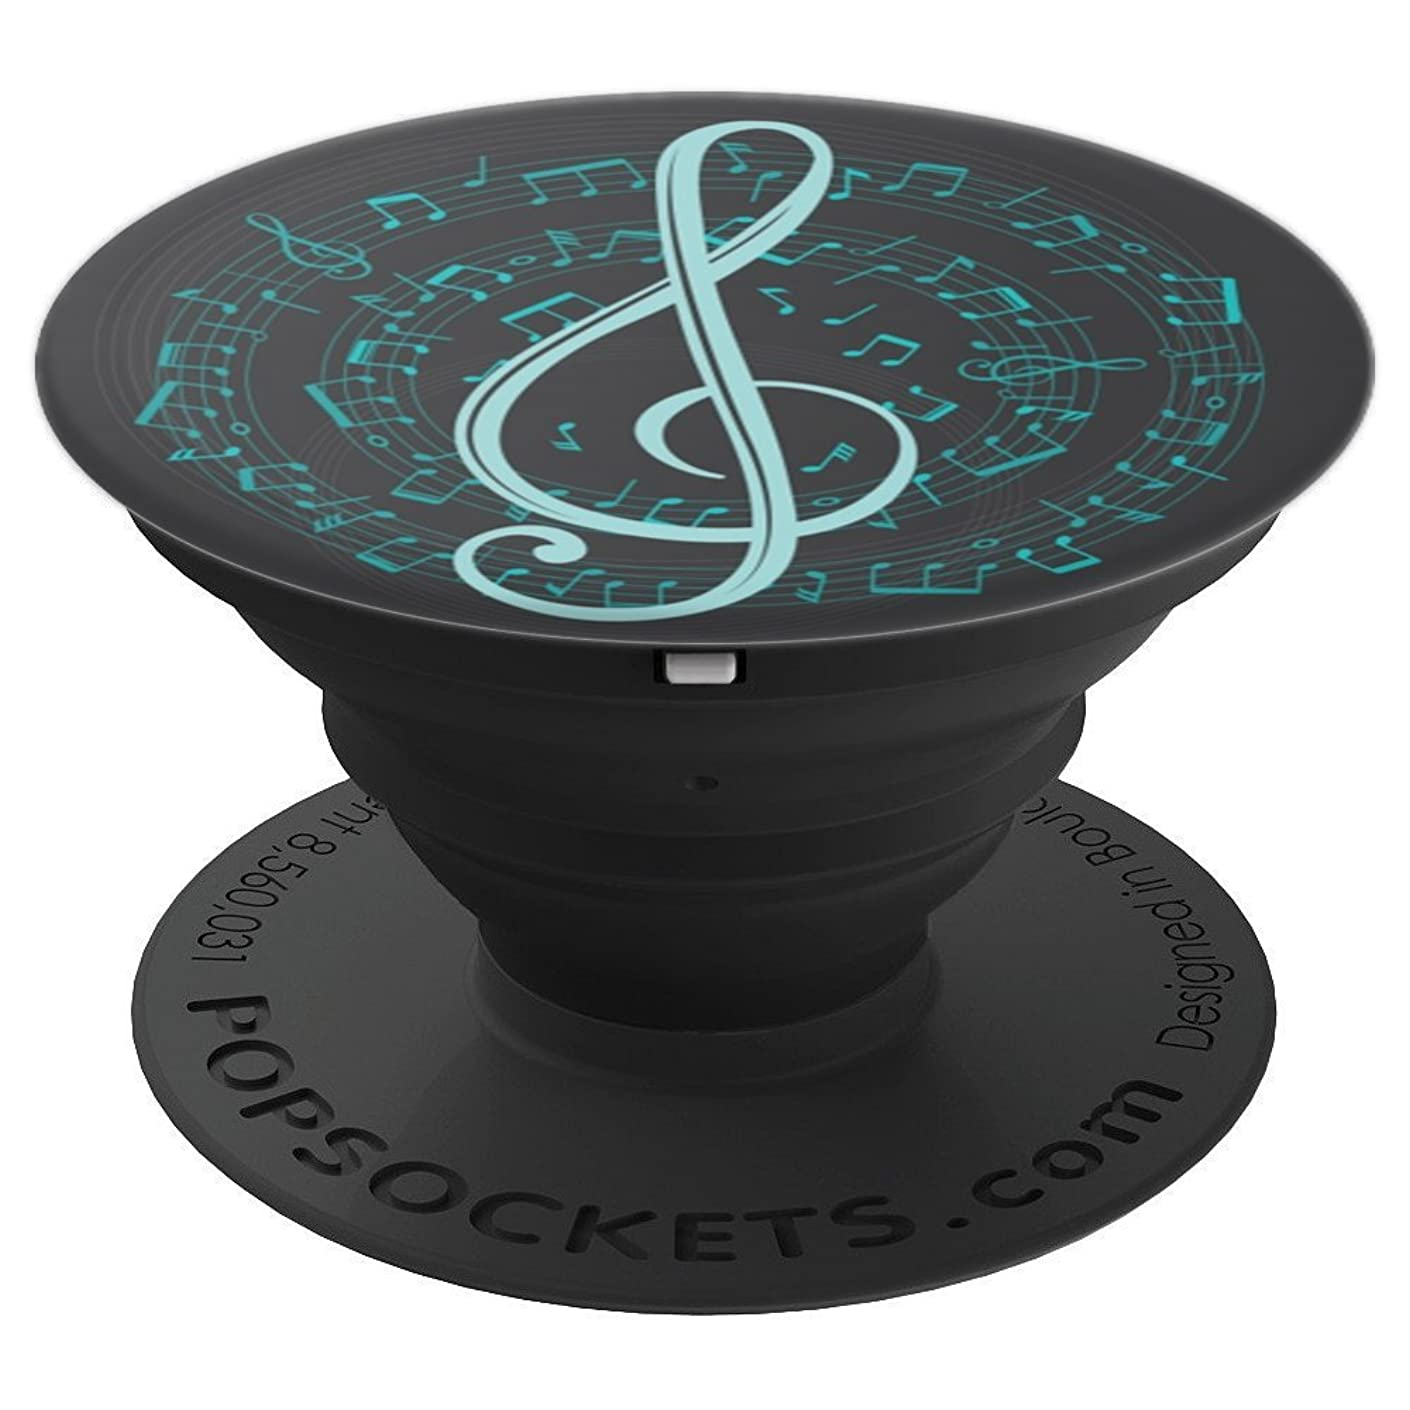 Treble Clef with Spiral Music Notes - PopSockets Grip and Stand for Phones and Tablets